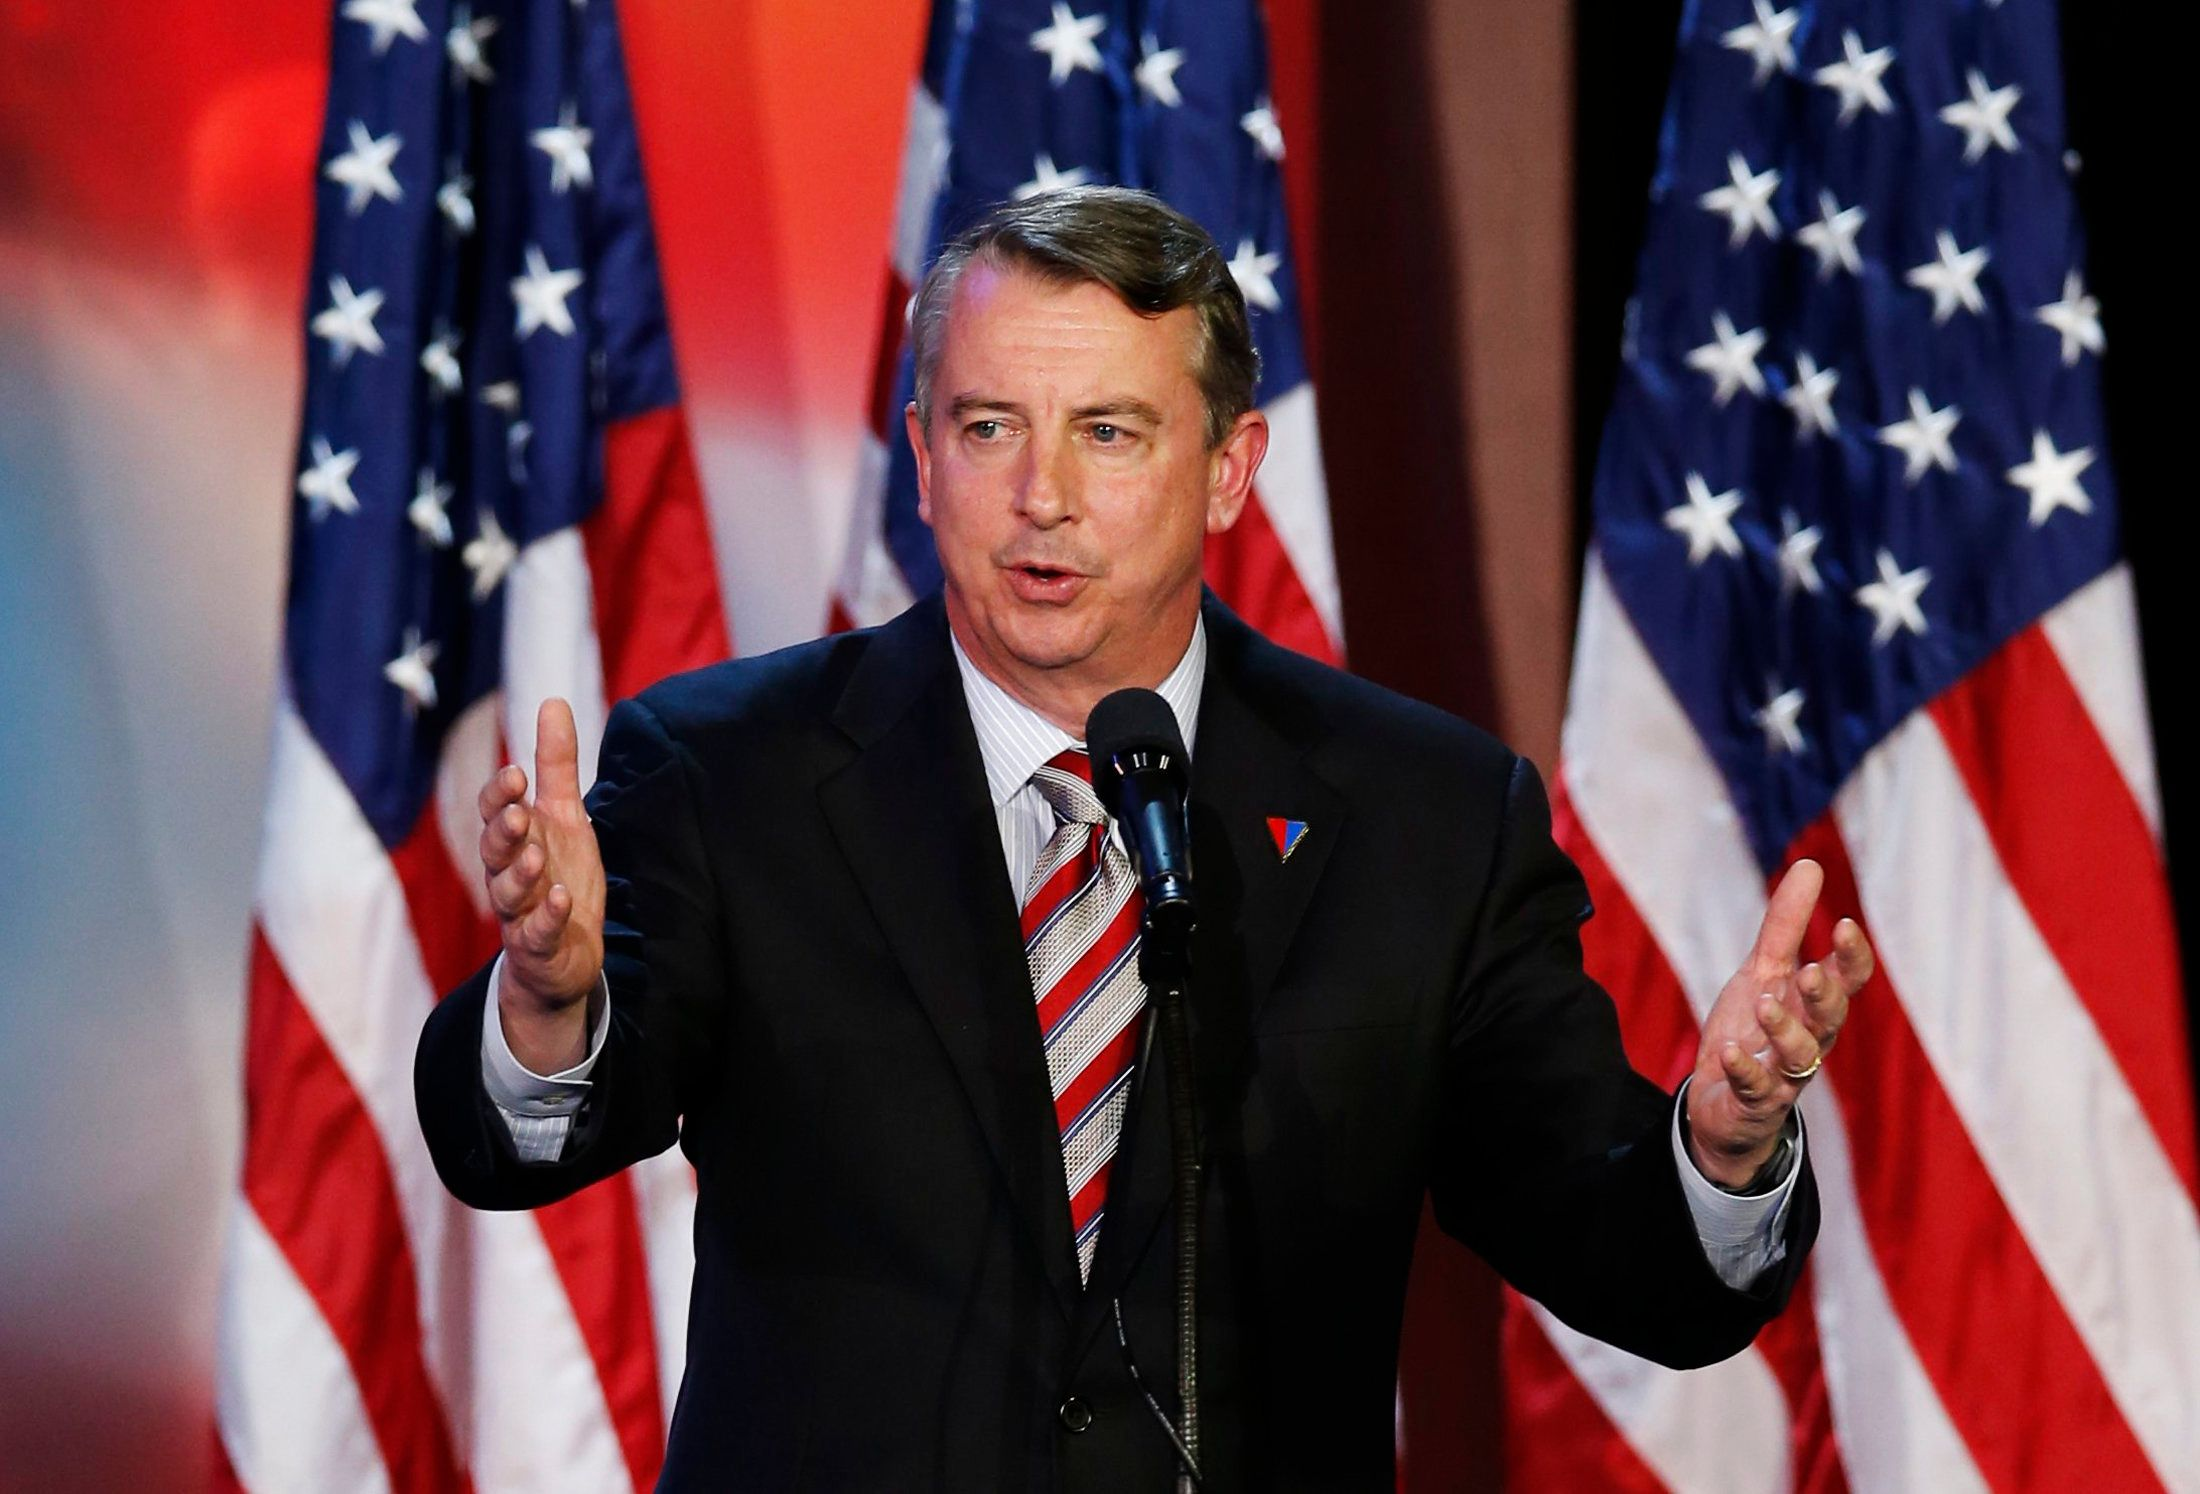 Ed Gillespie, senior political advisor of  U.S. Republican presidential nominee Mitt Romney, speaks during the Romney election night rally in Boston, Massachusetts November 6, 2012.  REUTERS/Mike Segar (UNITED STATES  - Tags: POLITICS ELECTIONS USA PRESIDENTIAL ELECTION)